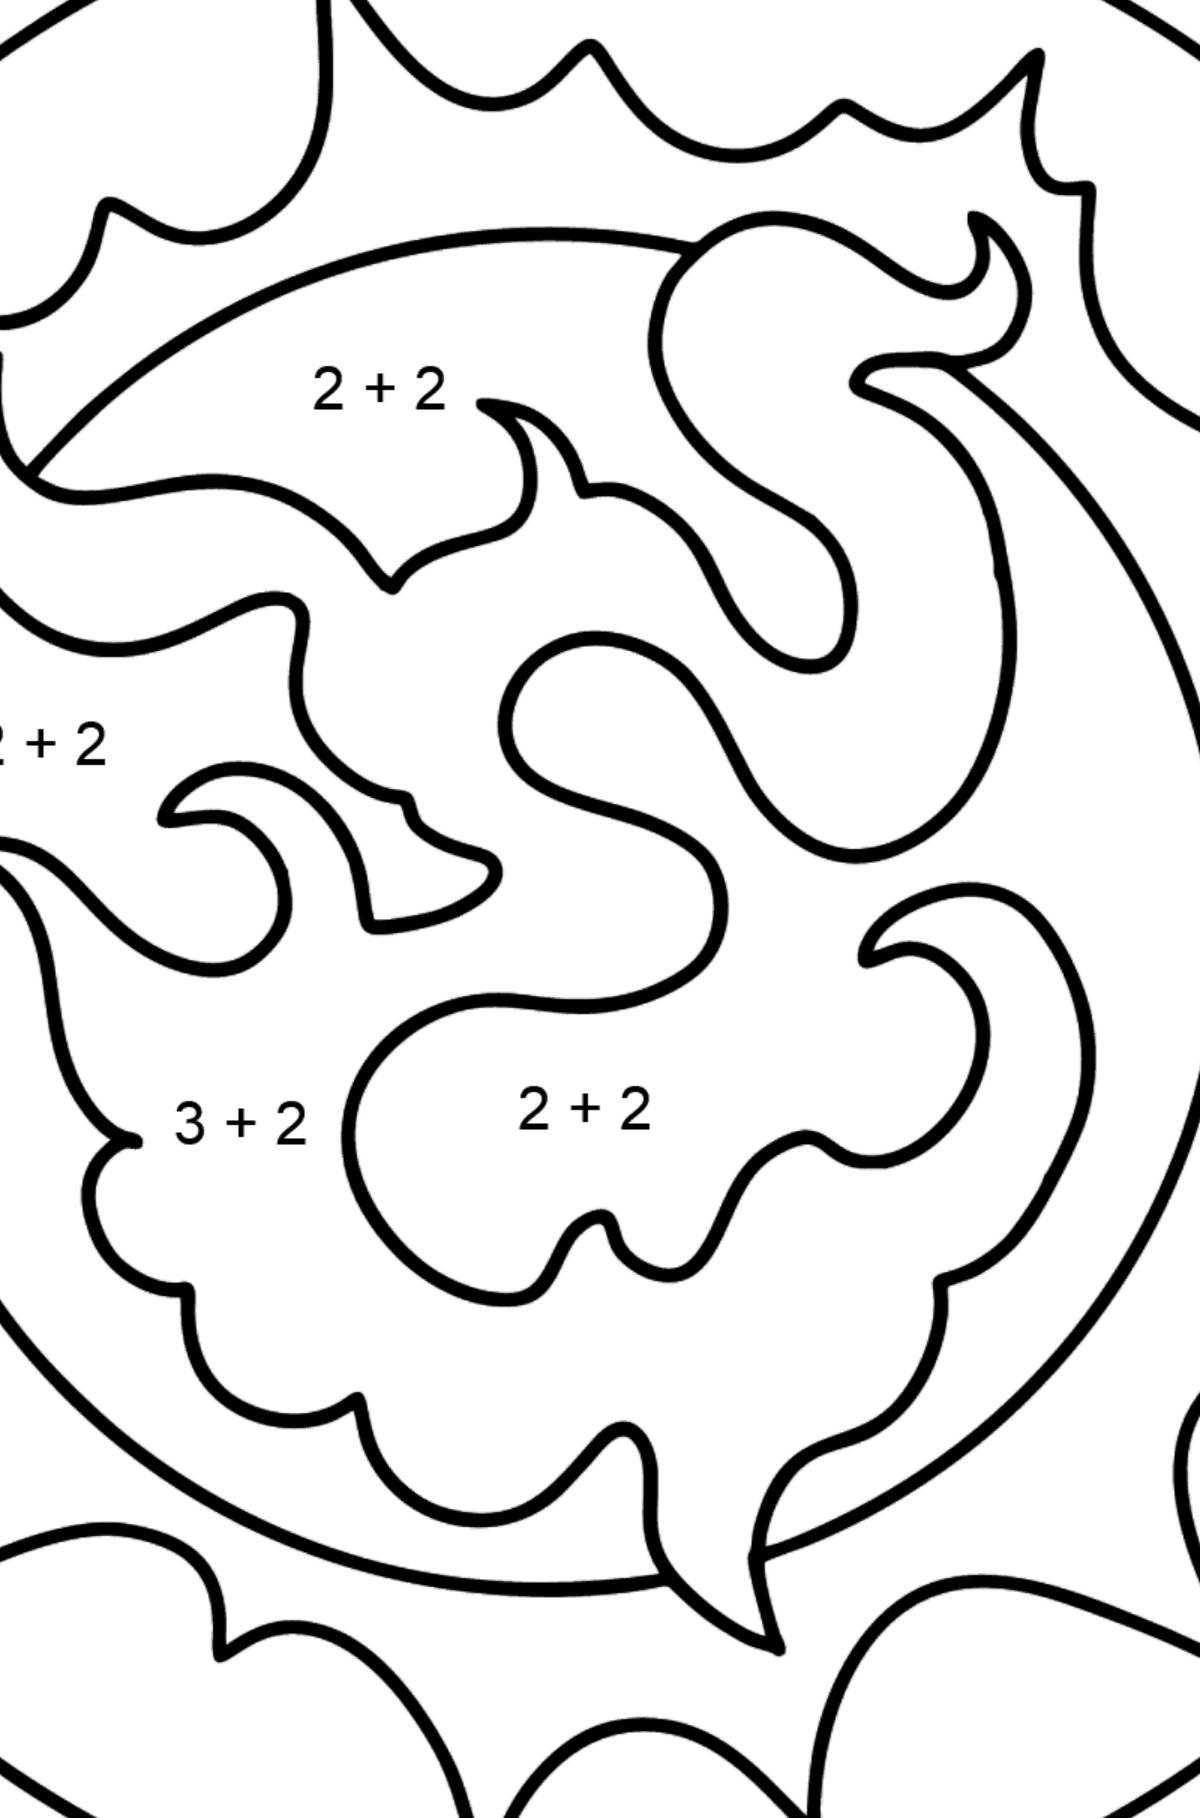 Star coloring page - Math Coloring - Addition for Kids